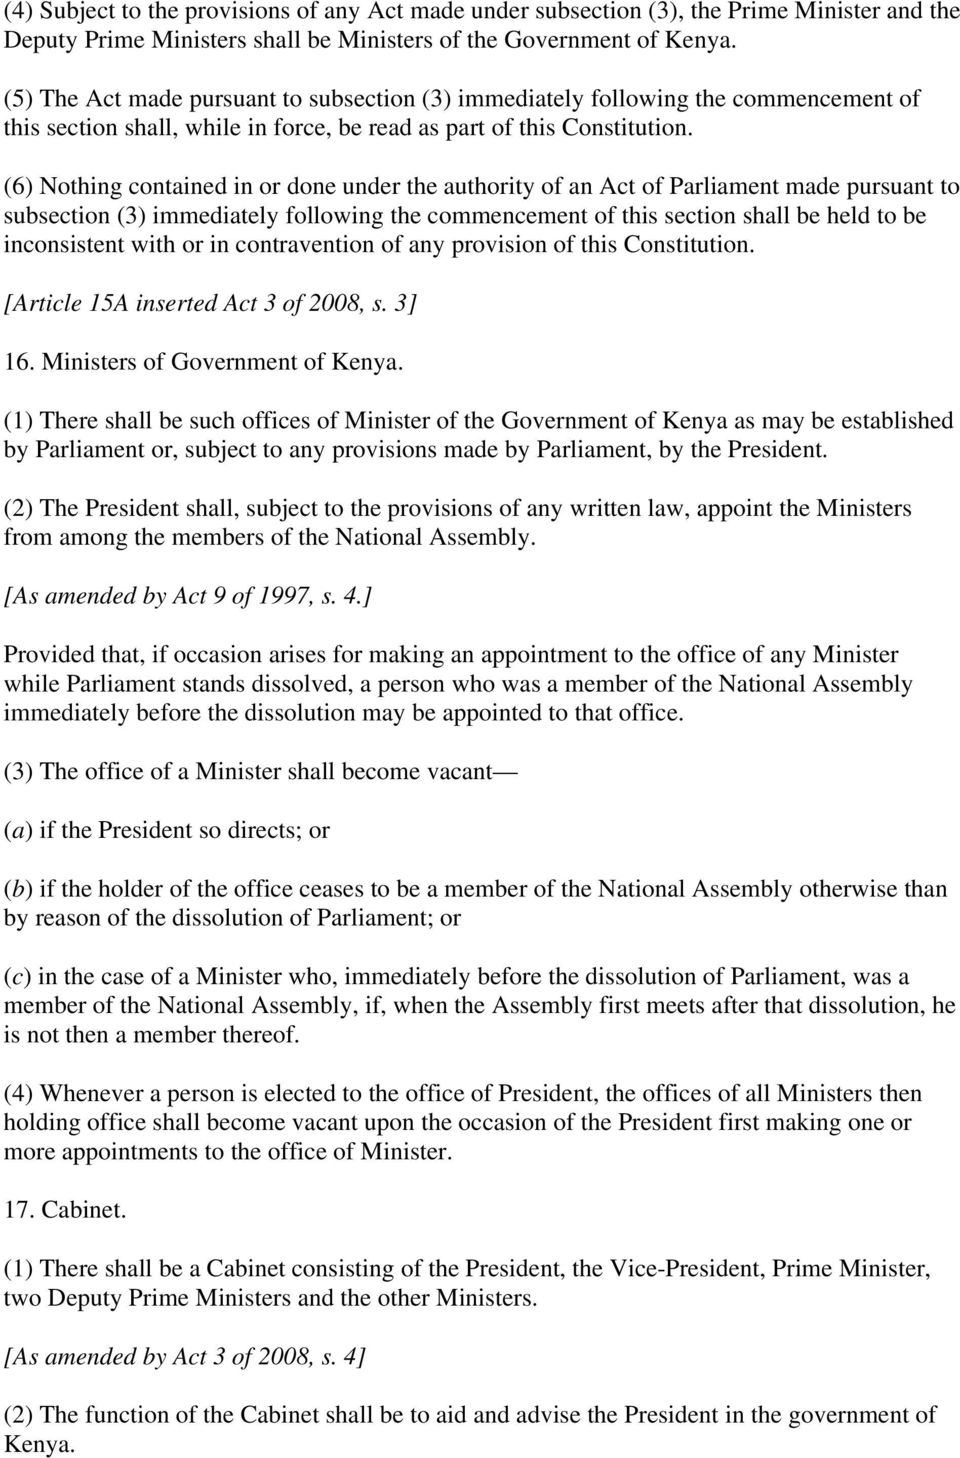 (6) Nothing contained in or done under the authority of an Act of Parliament made pursuant to subsection (3) immediately following the commencement of this section shall be held to be inconsistent